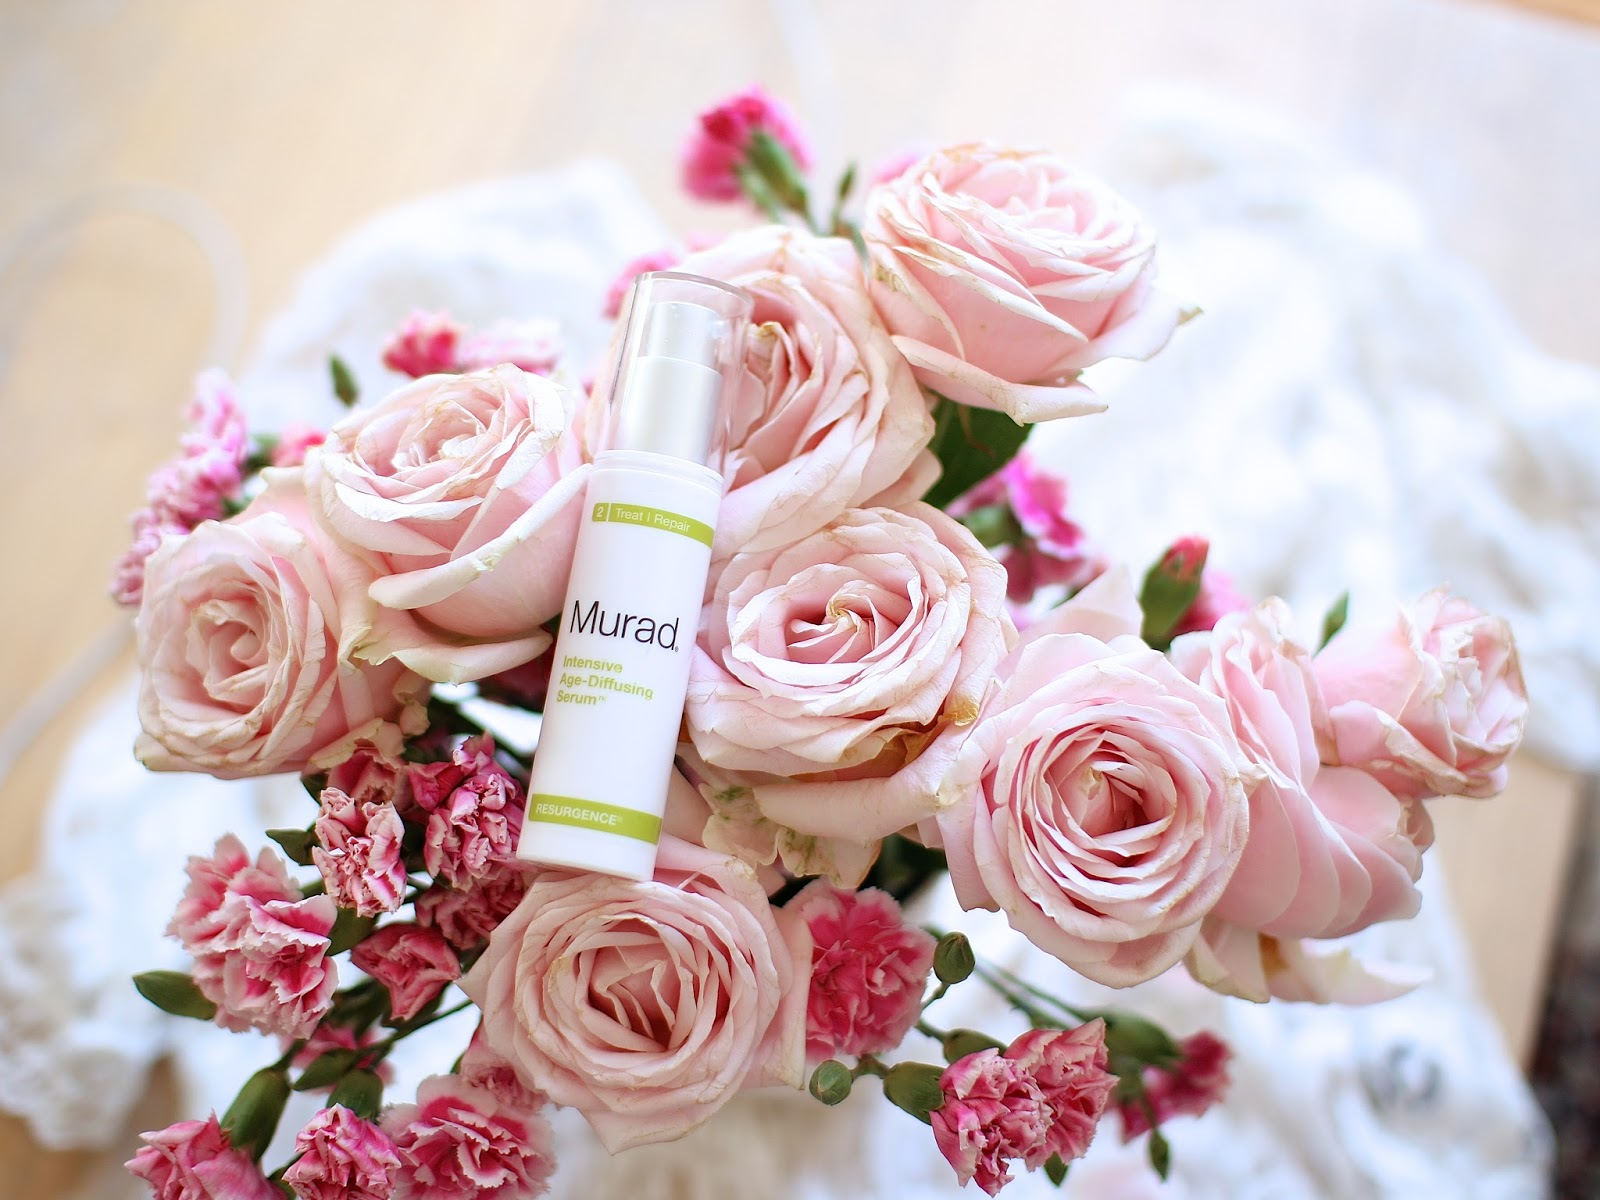 beautiful blush toned roses from london flower market shown with a moisturizing skincare product